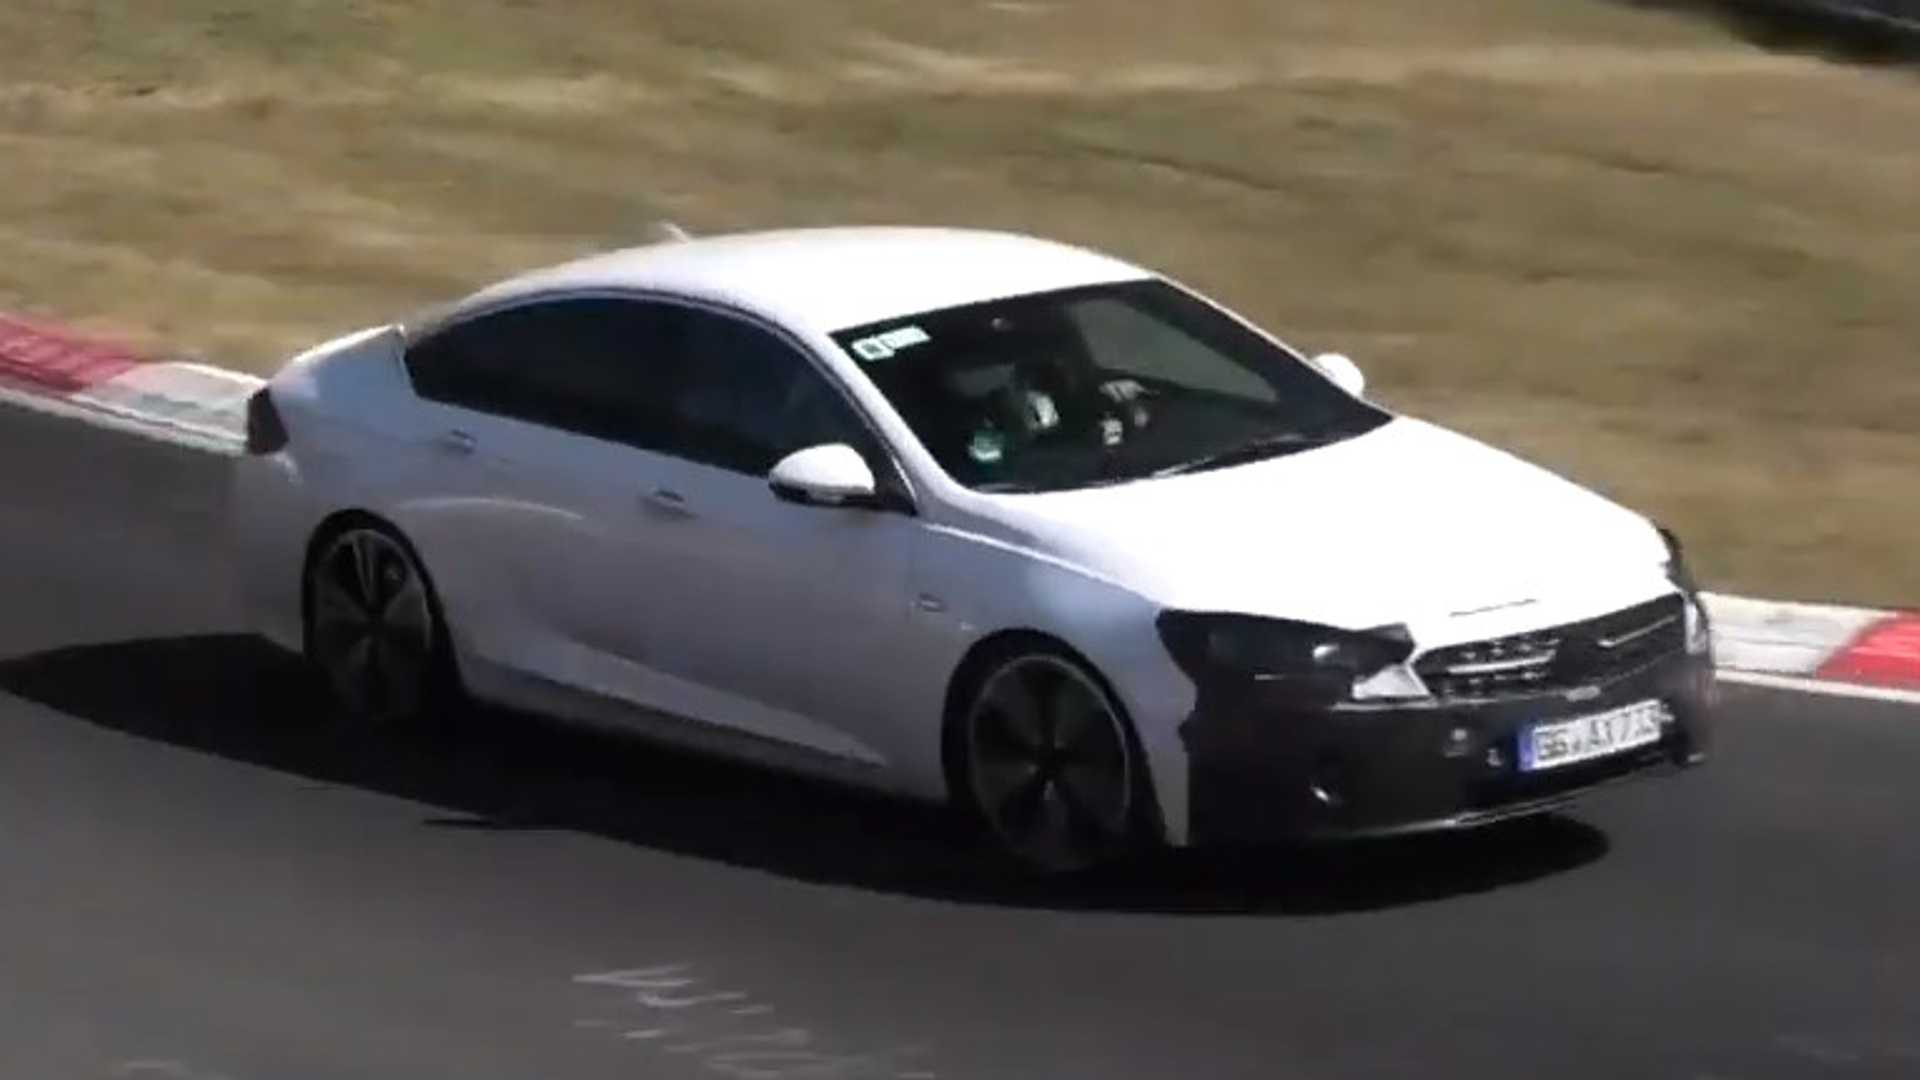 2020 Opel Insignia Visits Nurburgring For High Speed Test Session